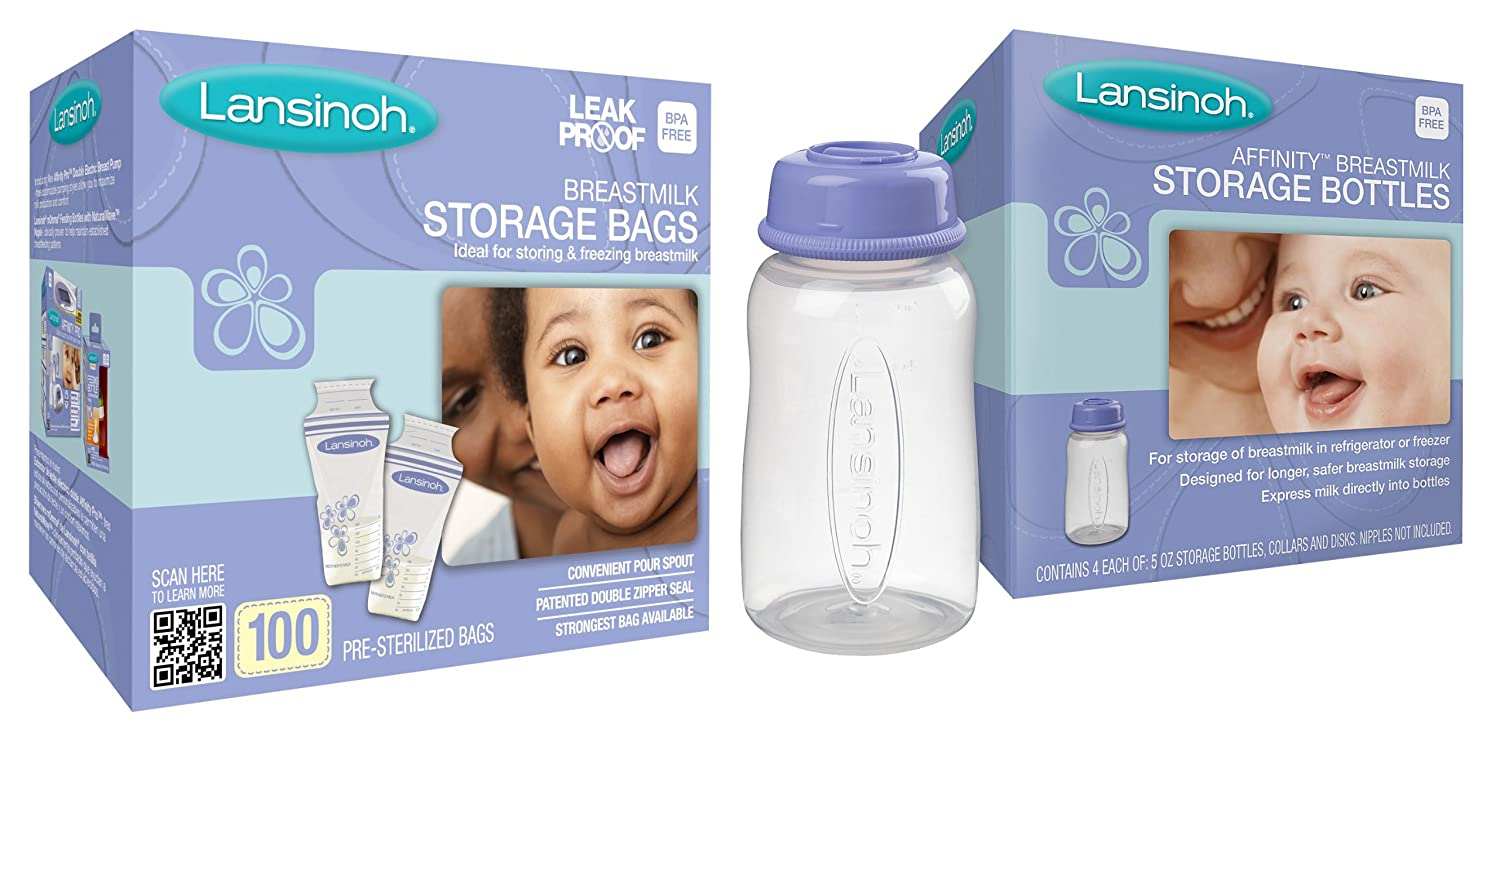 Lansinoh Breastmilk Storage Bags, 100 Count with 4 Storage Bottles